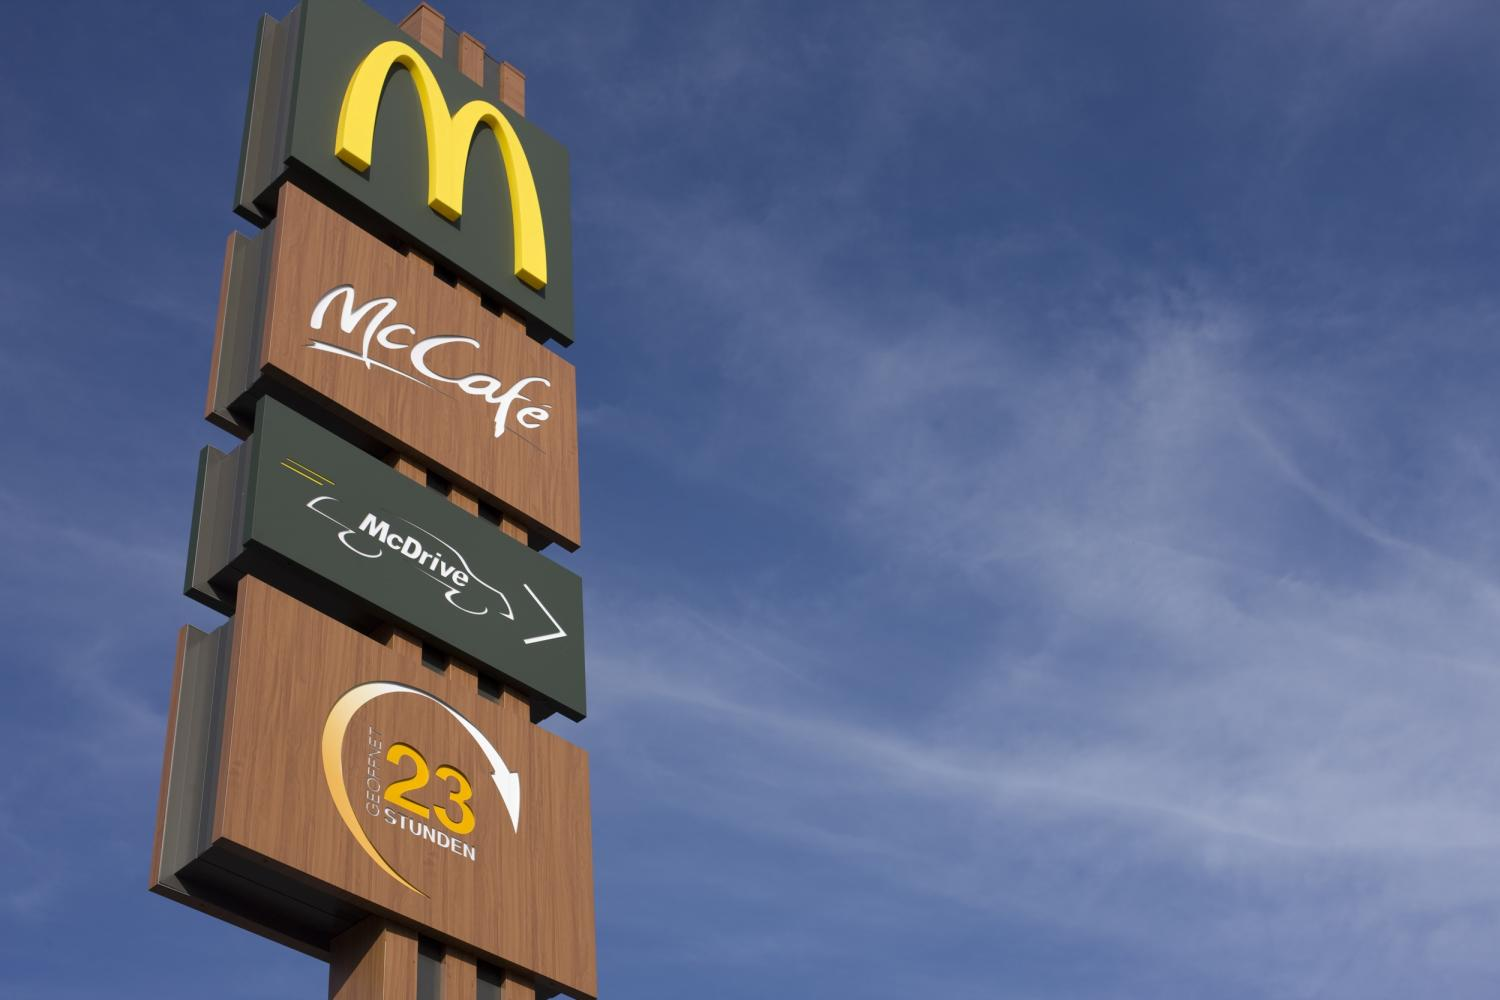 McDonald's and AARP announced they have entered into a partnership to help the company and its thousands of franchisees get connected to what could be up to 250,000 potential employees in the 55-and-older demographic.